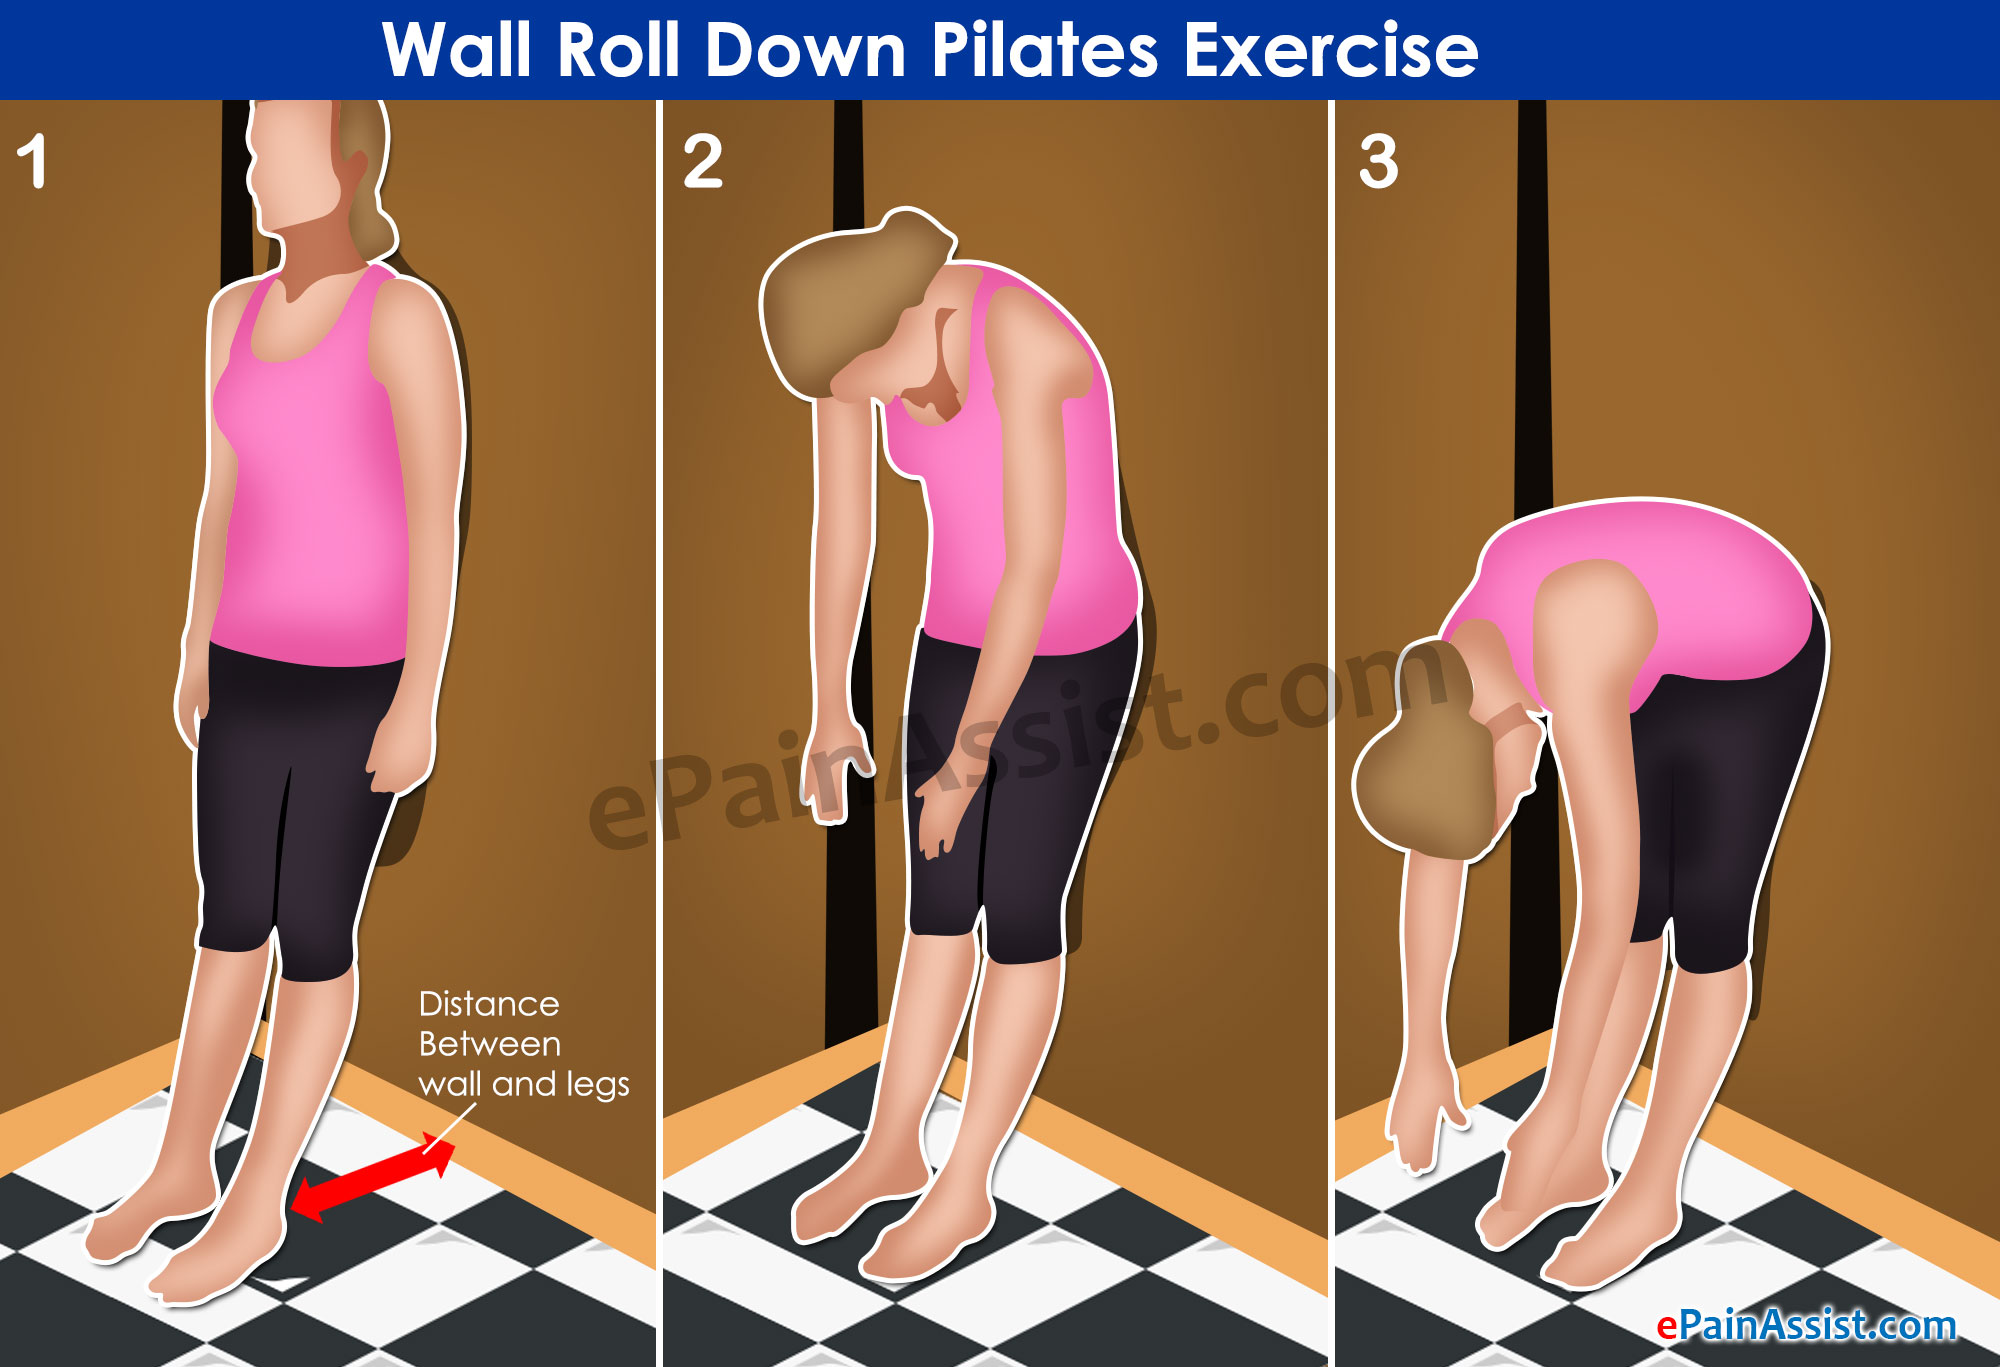 Wall Roll Down Pilates Exercise